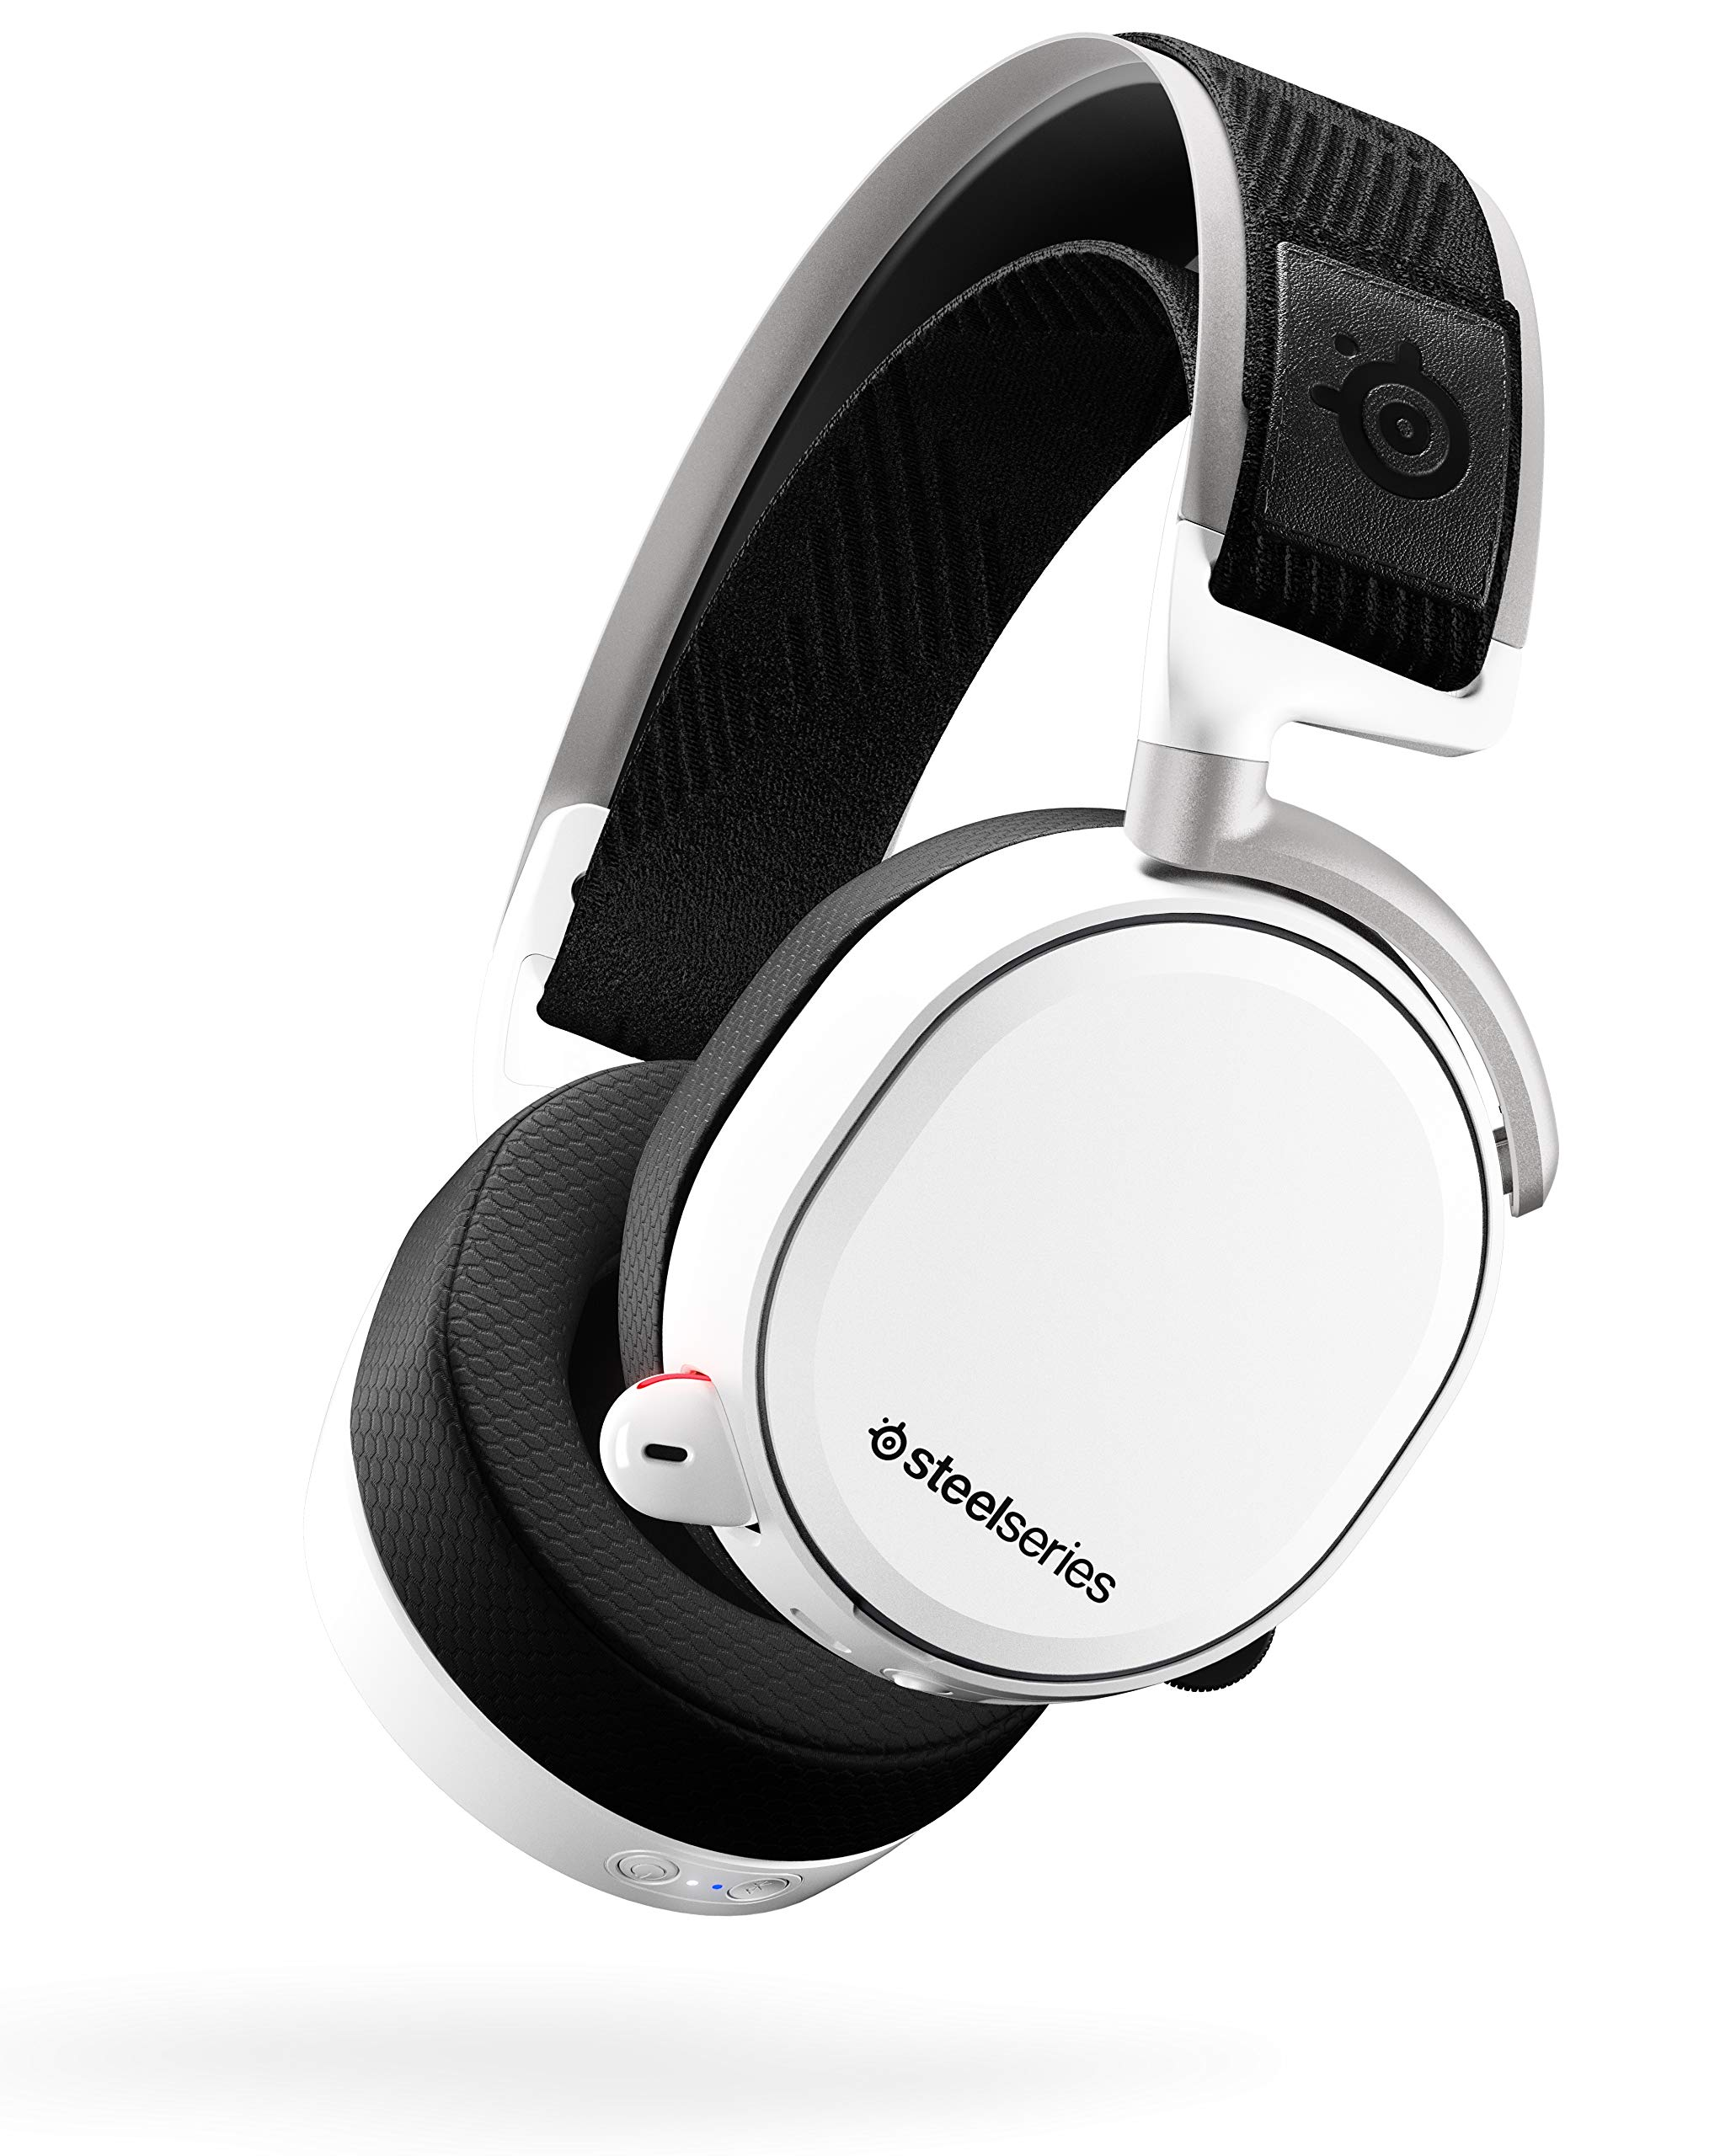 Auriculares Gamer : Steelseries Arctis Pro Wireless Lossless